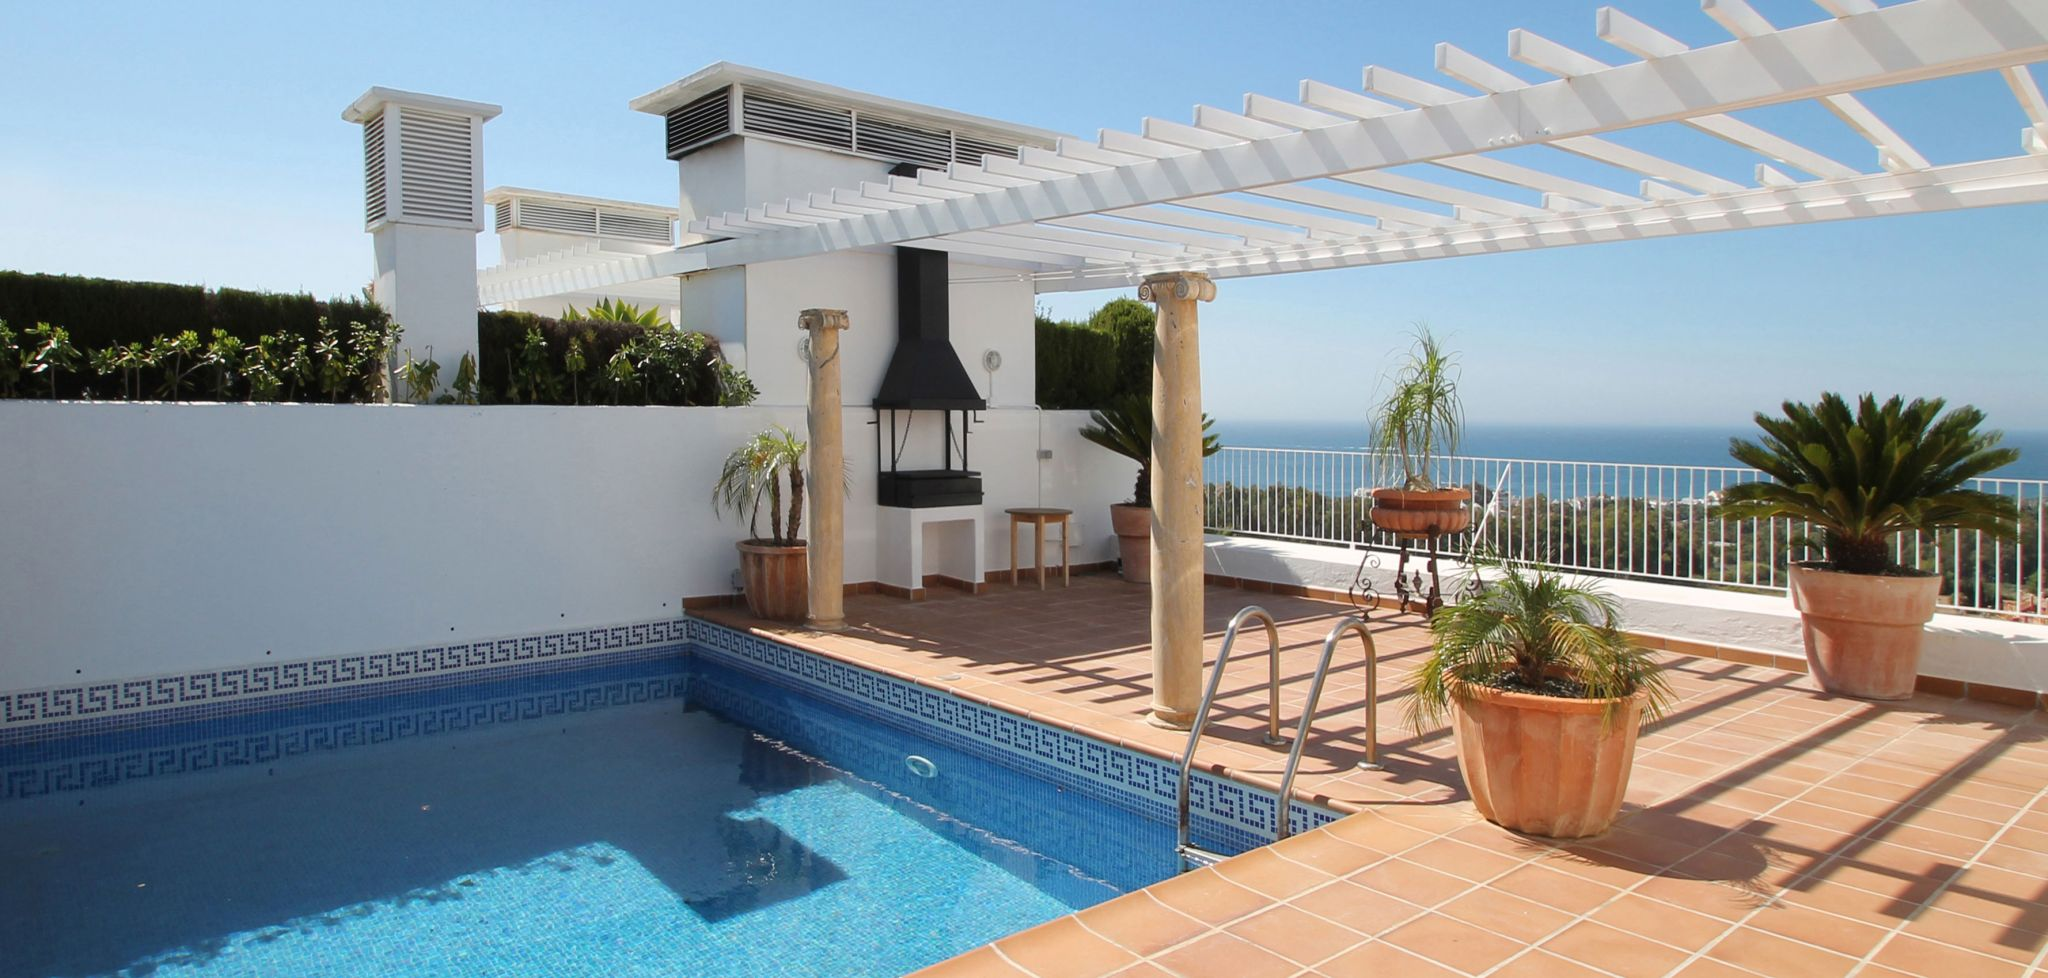 Three bedroom penthouse with sea views and private roof top swimming pool